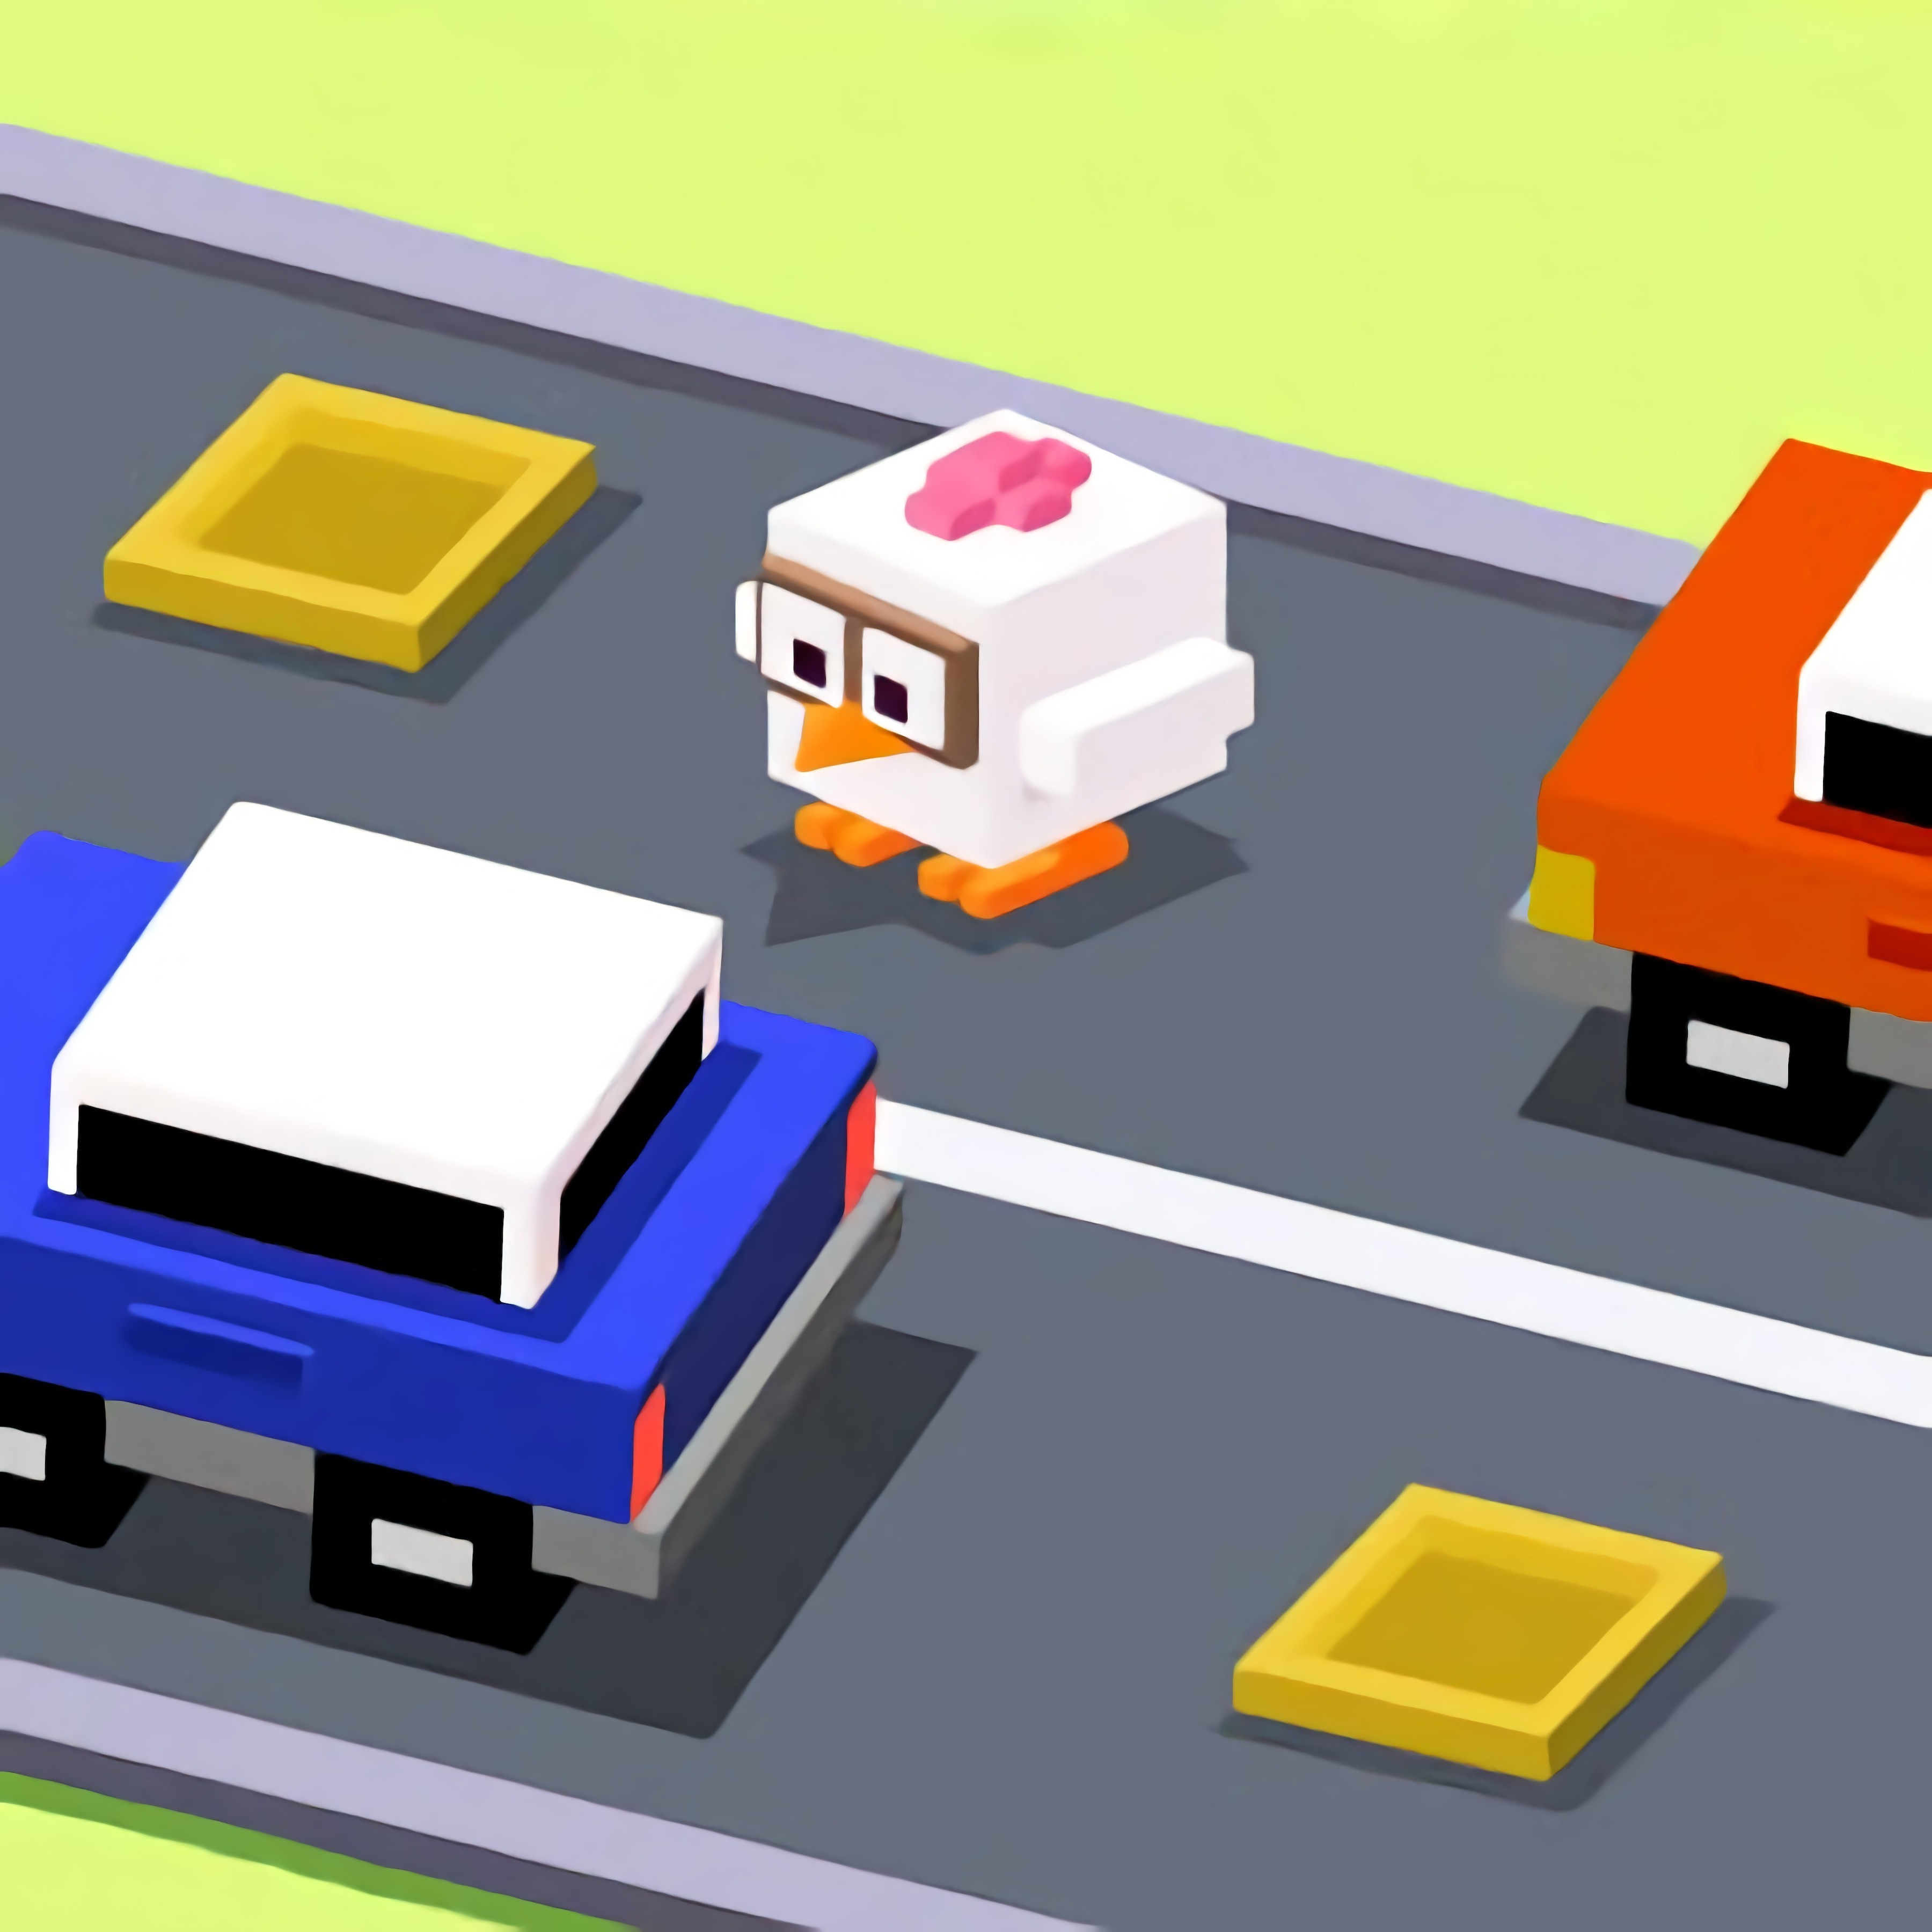 Road Crossing Games